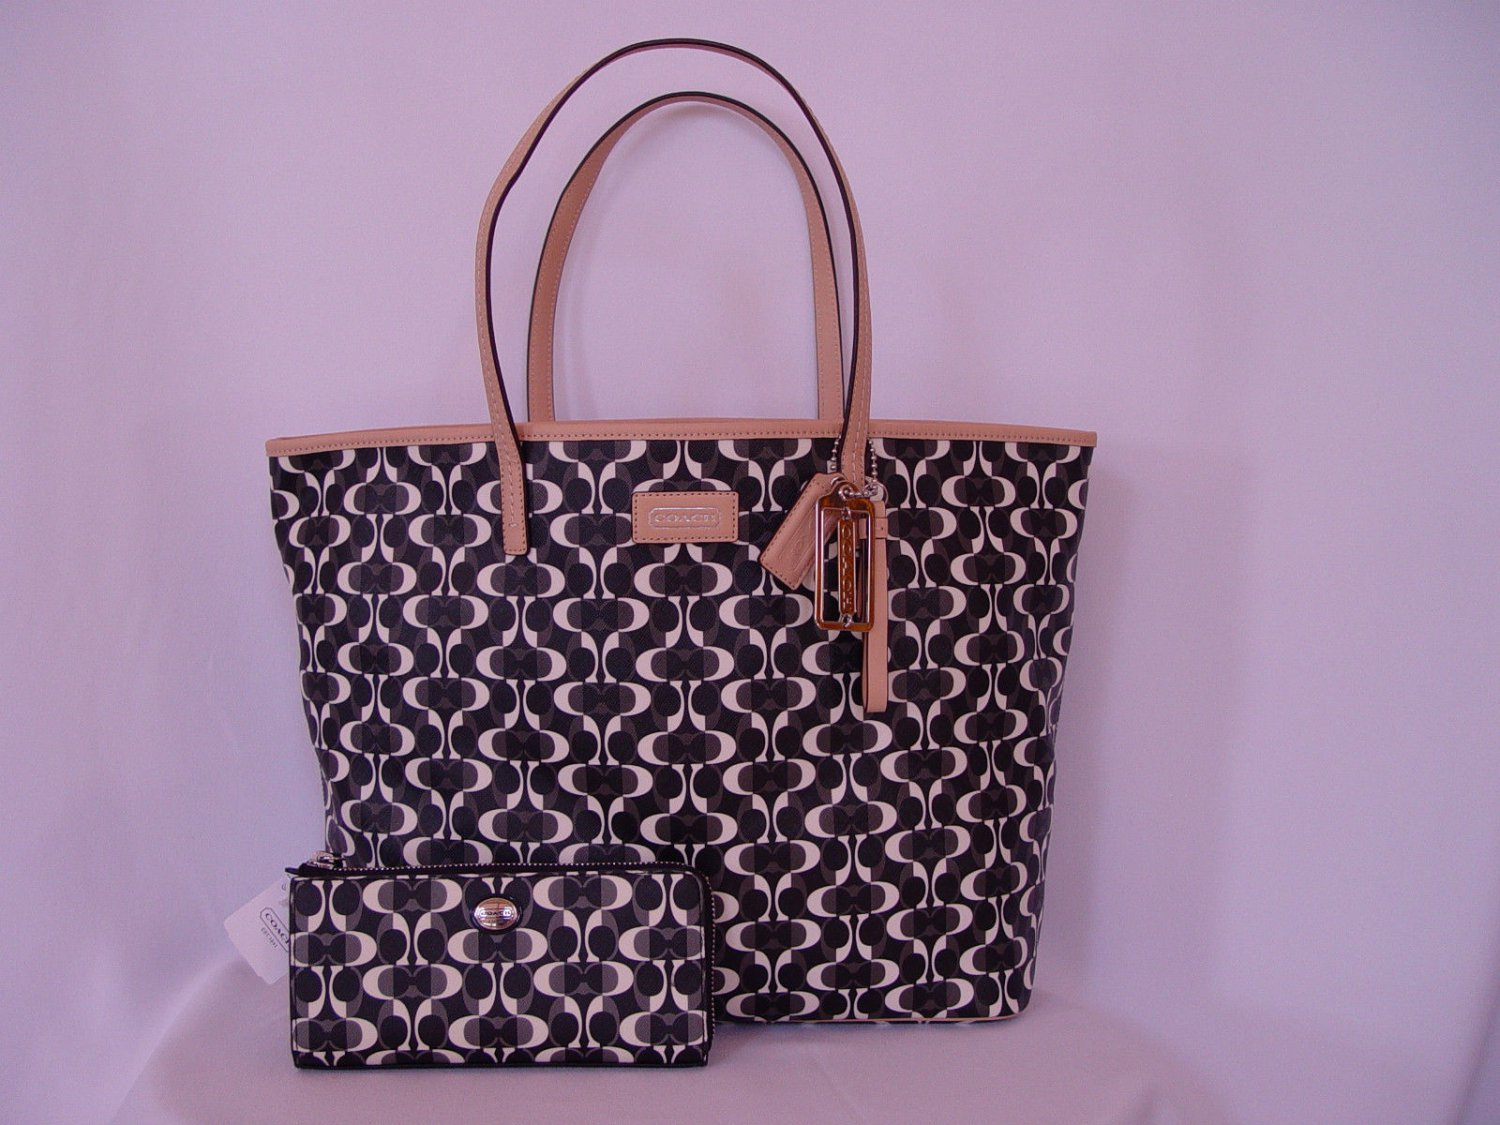 Details about  NEW AUTHENTIC COACH BLACK/WHITE PARK METRO DREAM TOTE +MATCHING WALLET F25673